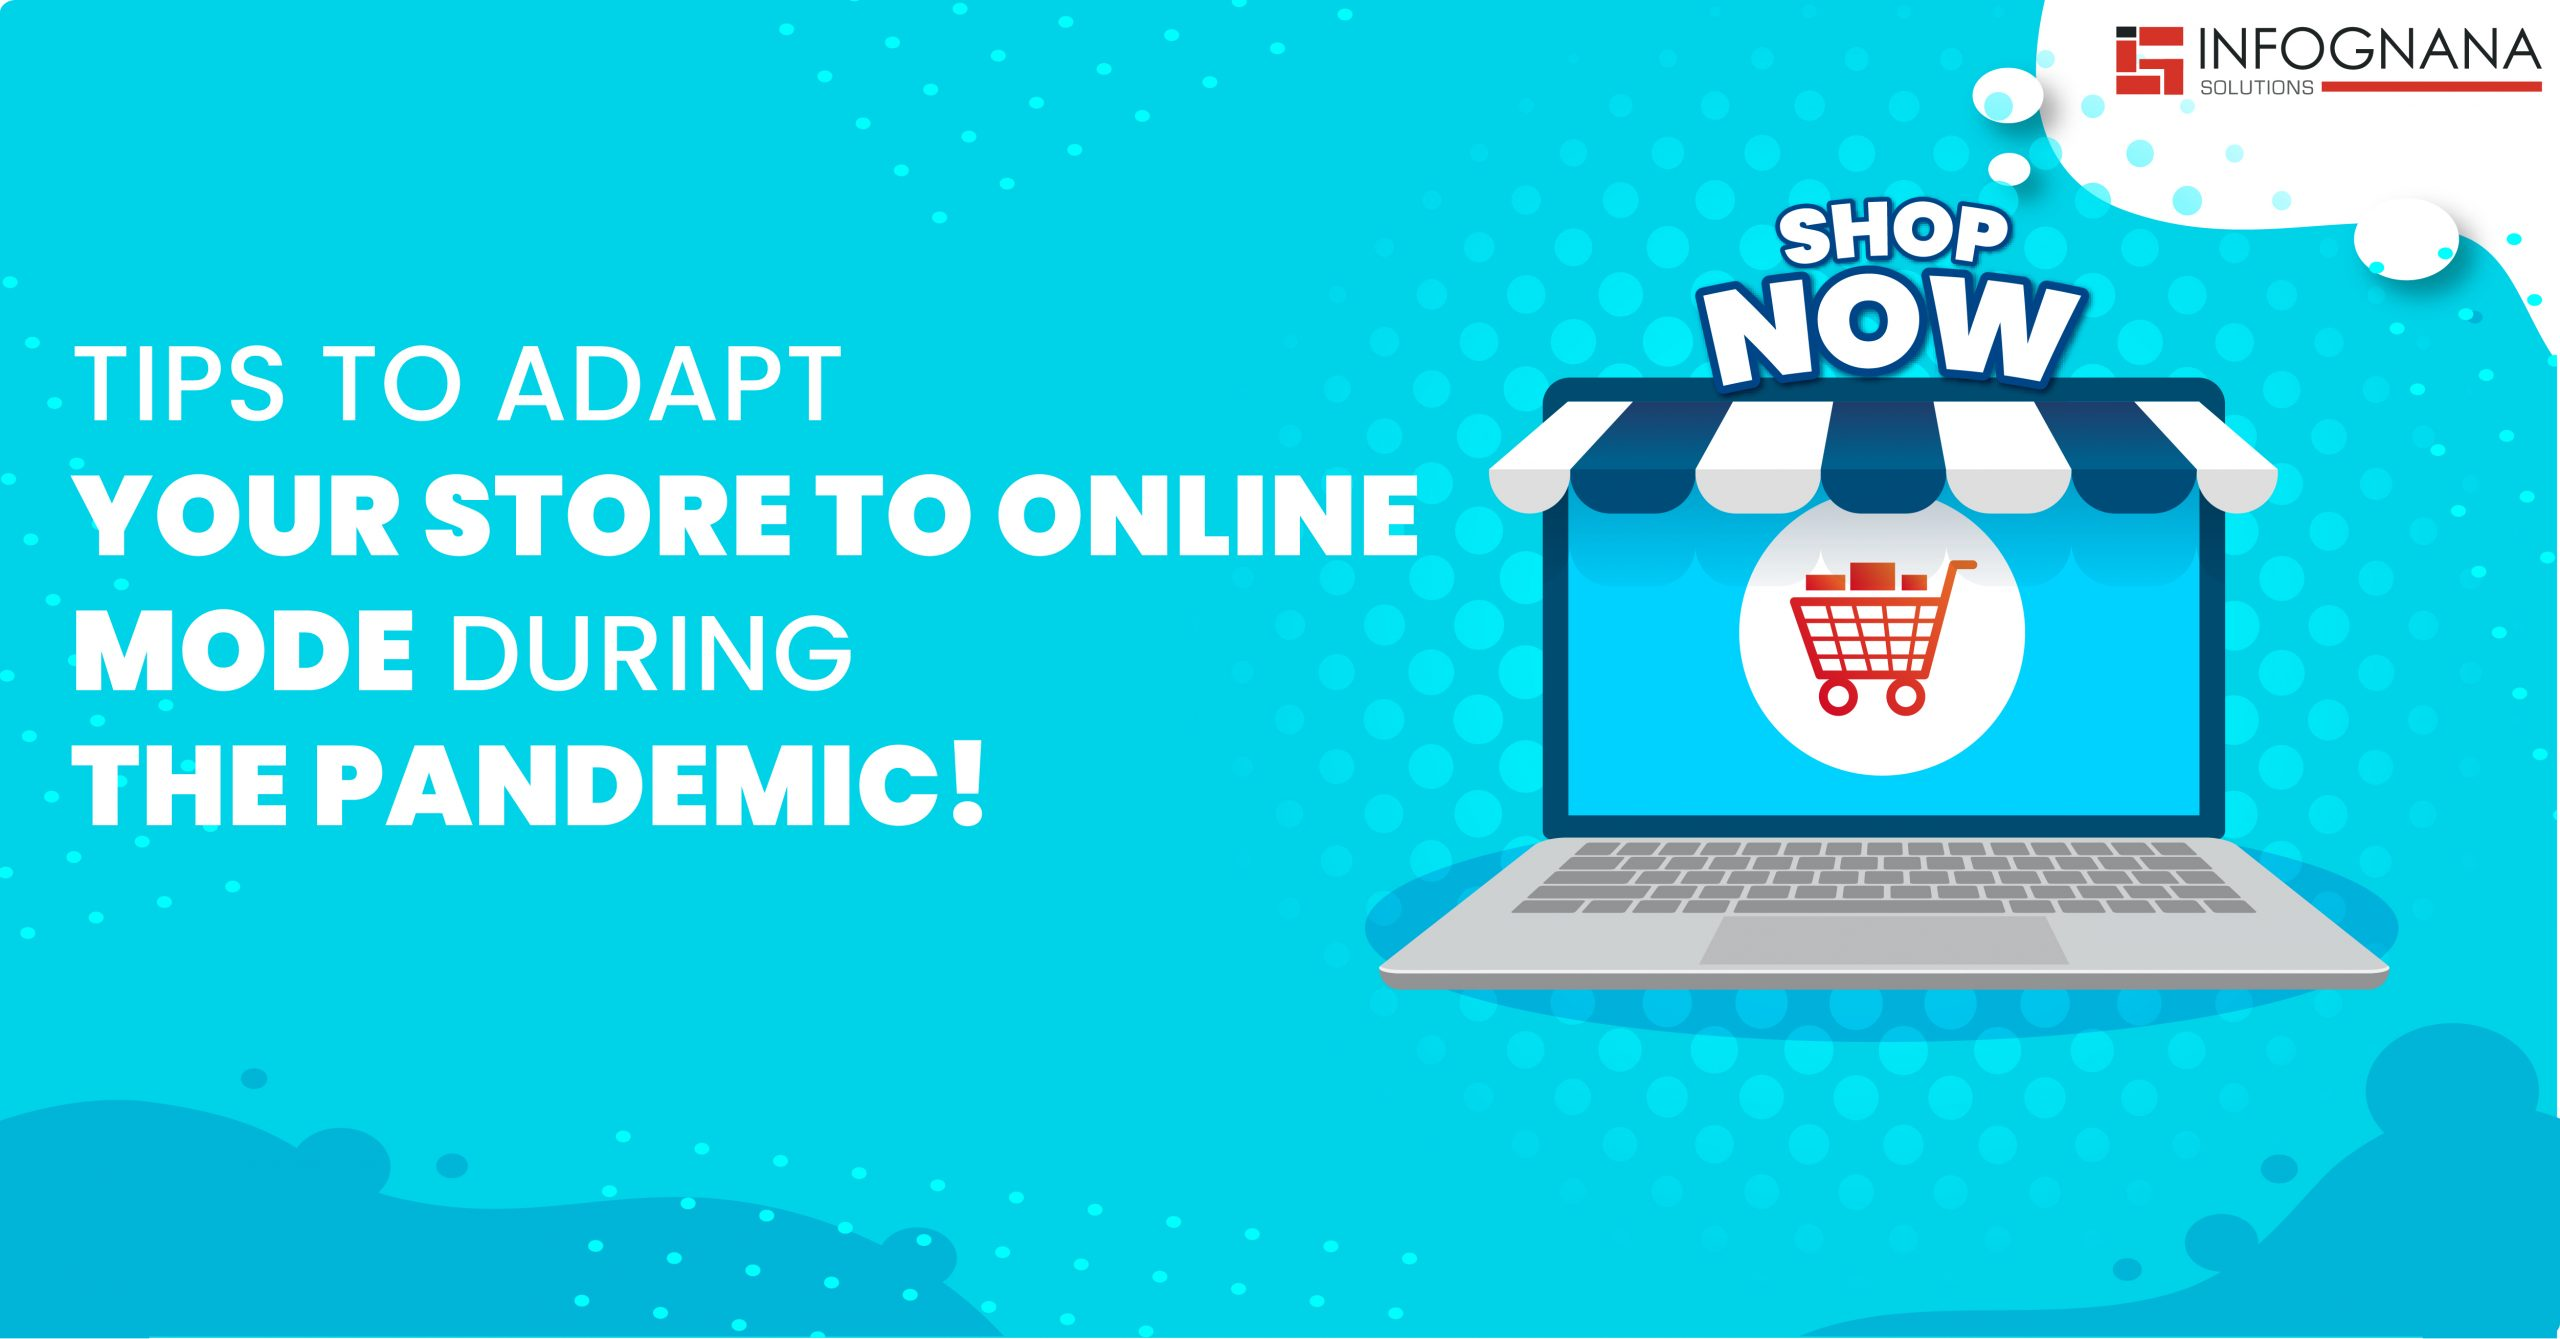 Tips to adapt your store to online mode during the pandemic!